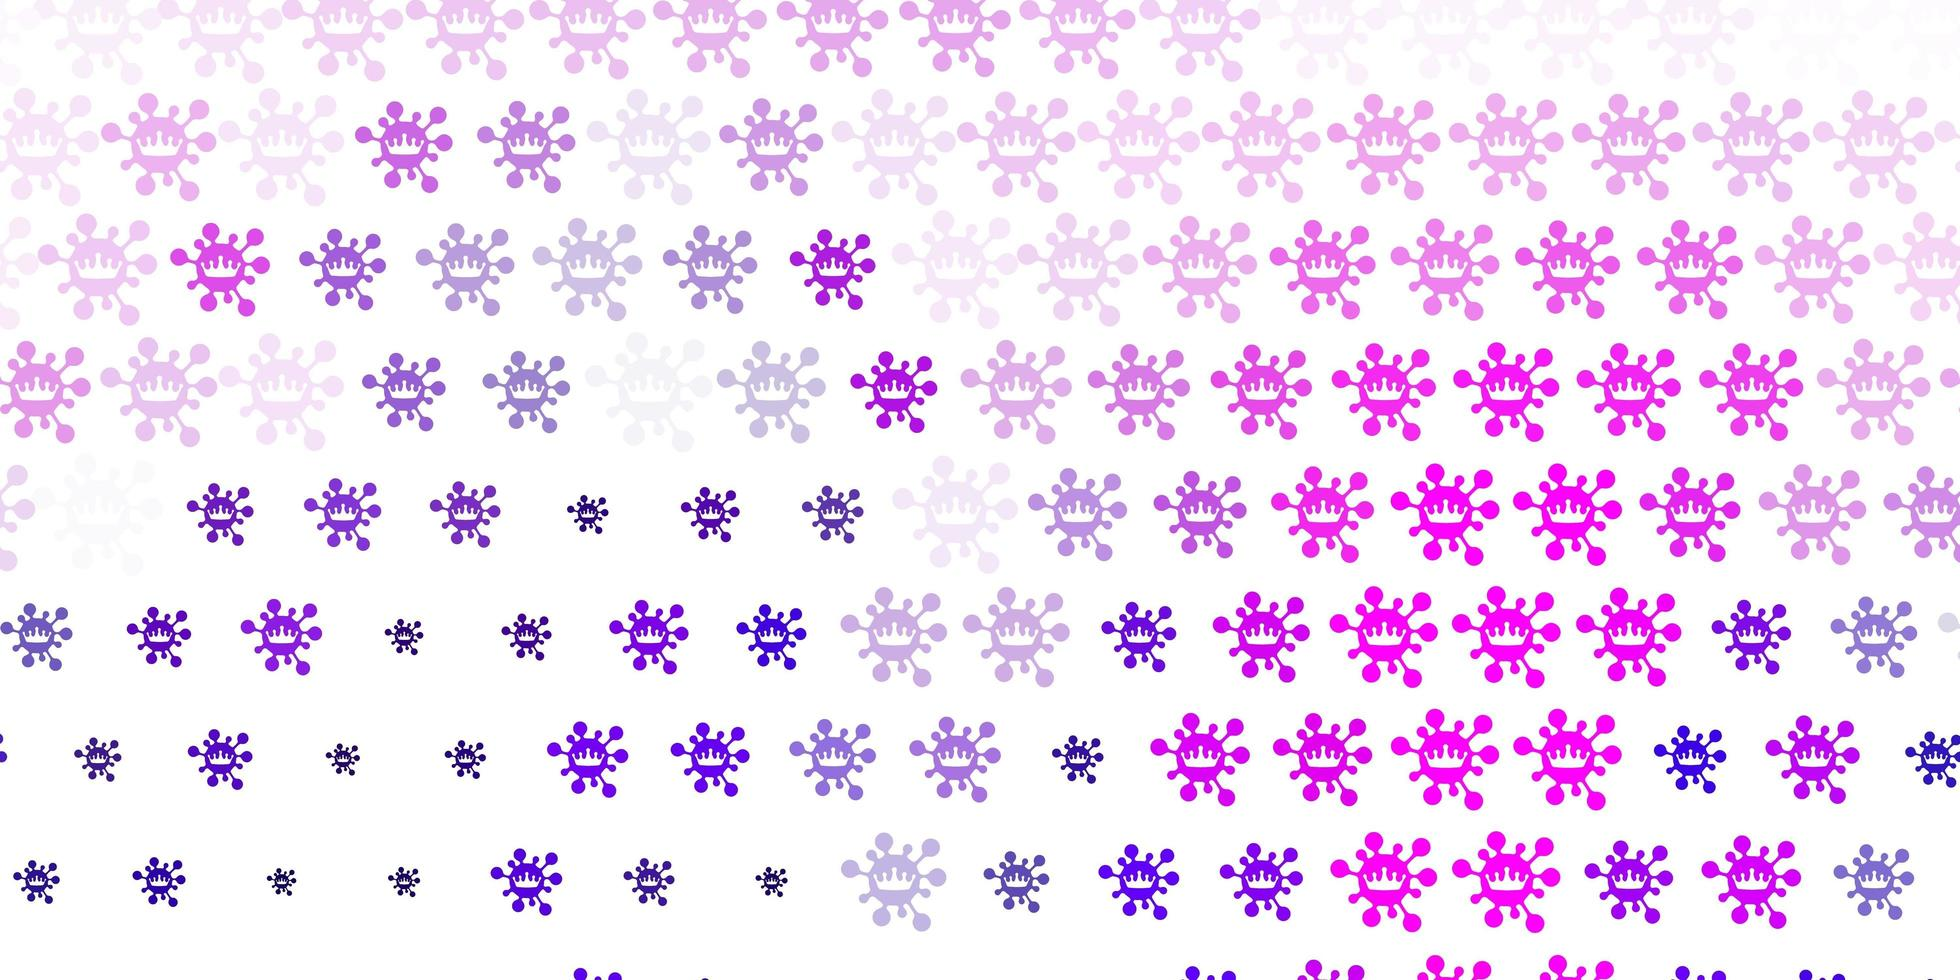 Light Purple vector texture with disease symbols.